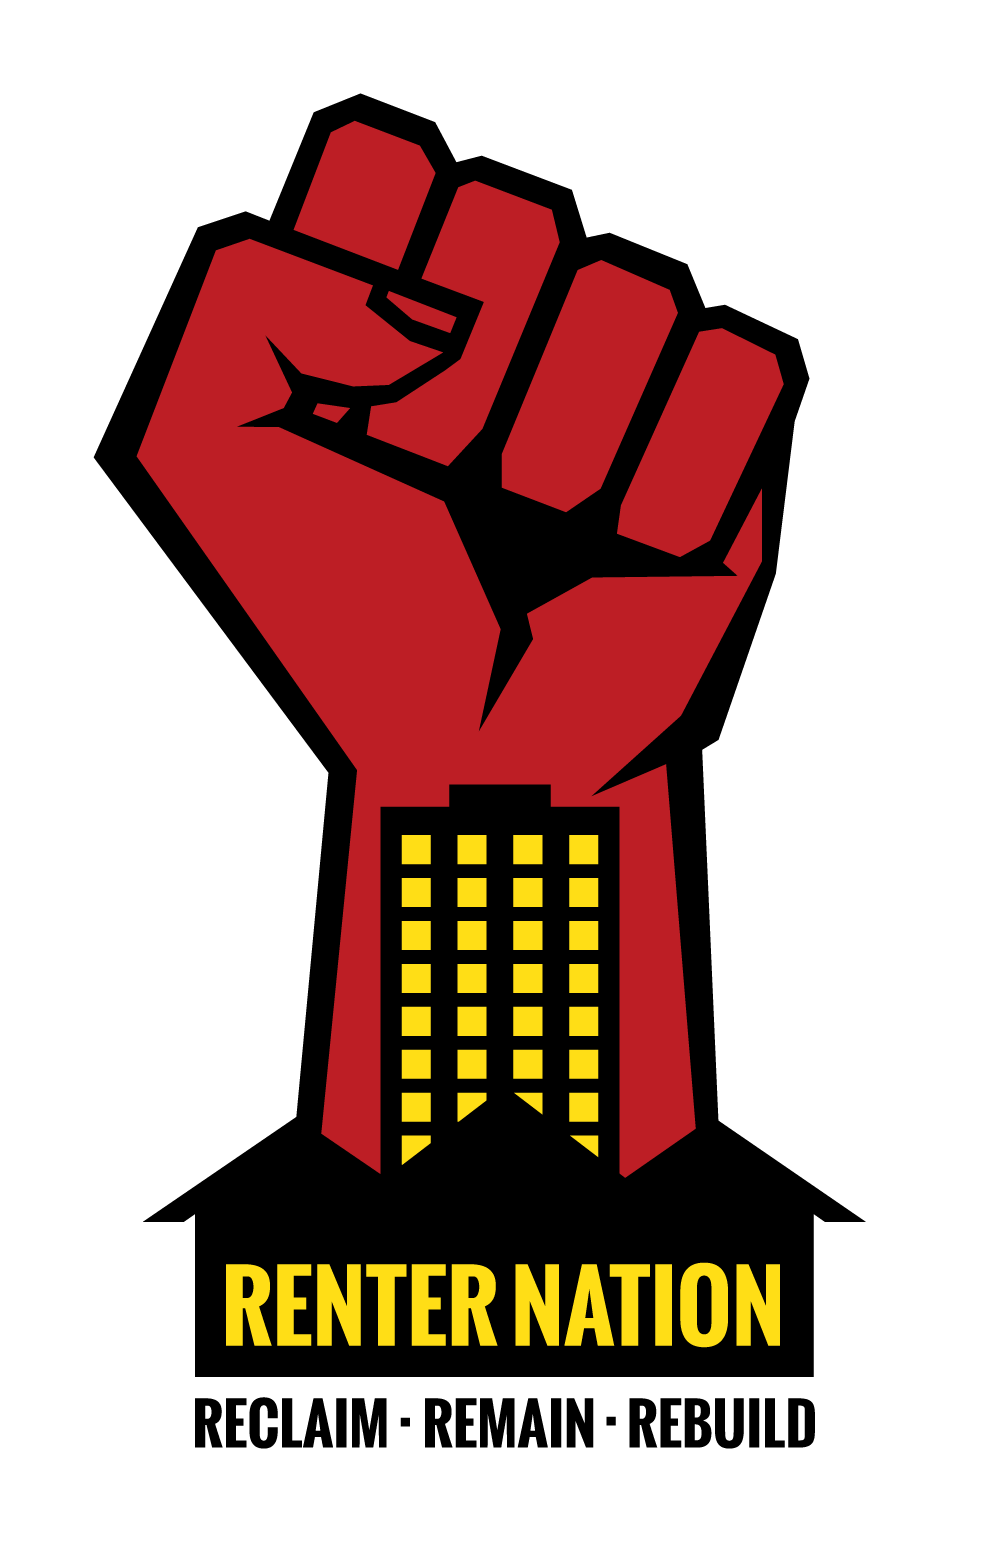 renter-nation-logo-full-clr